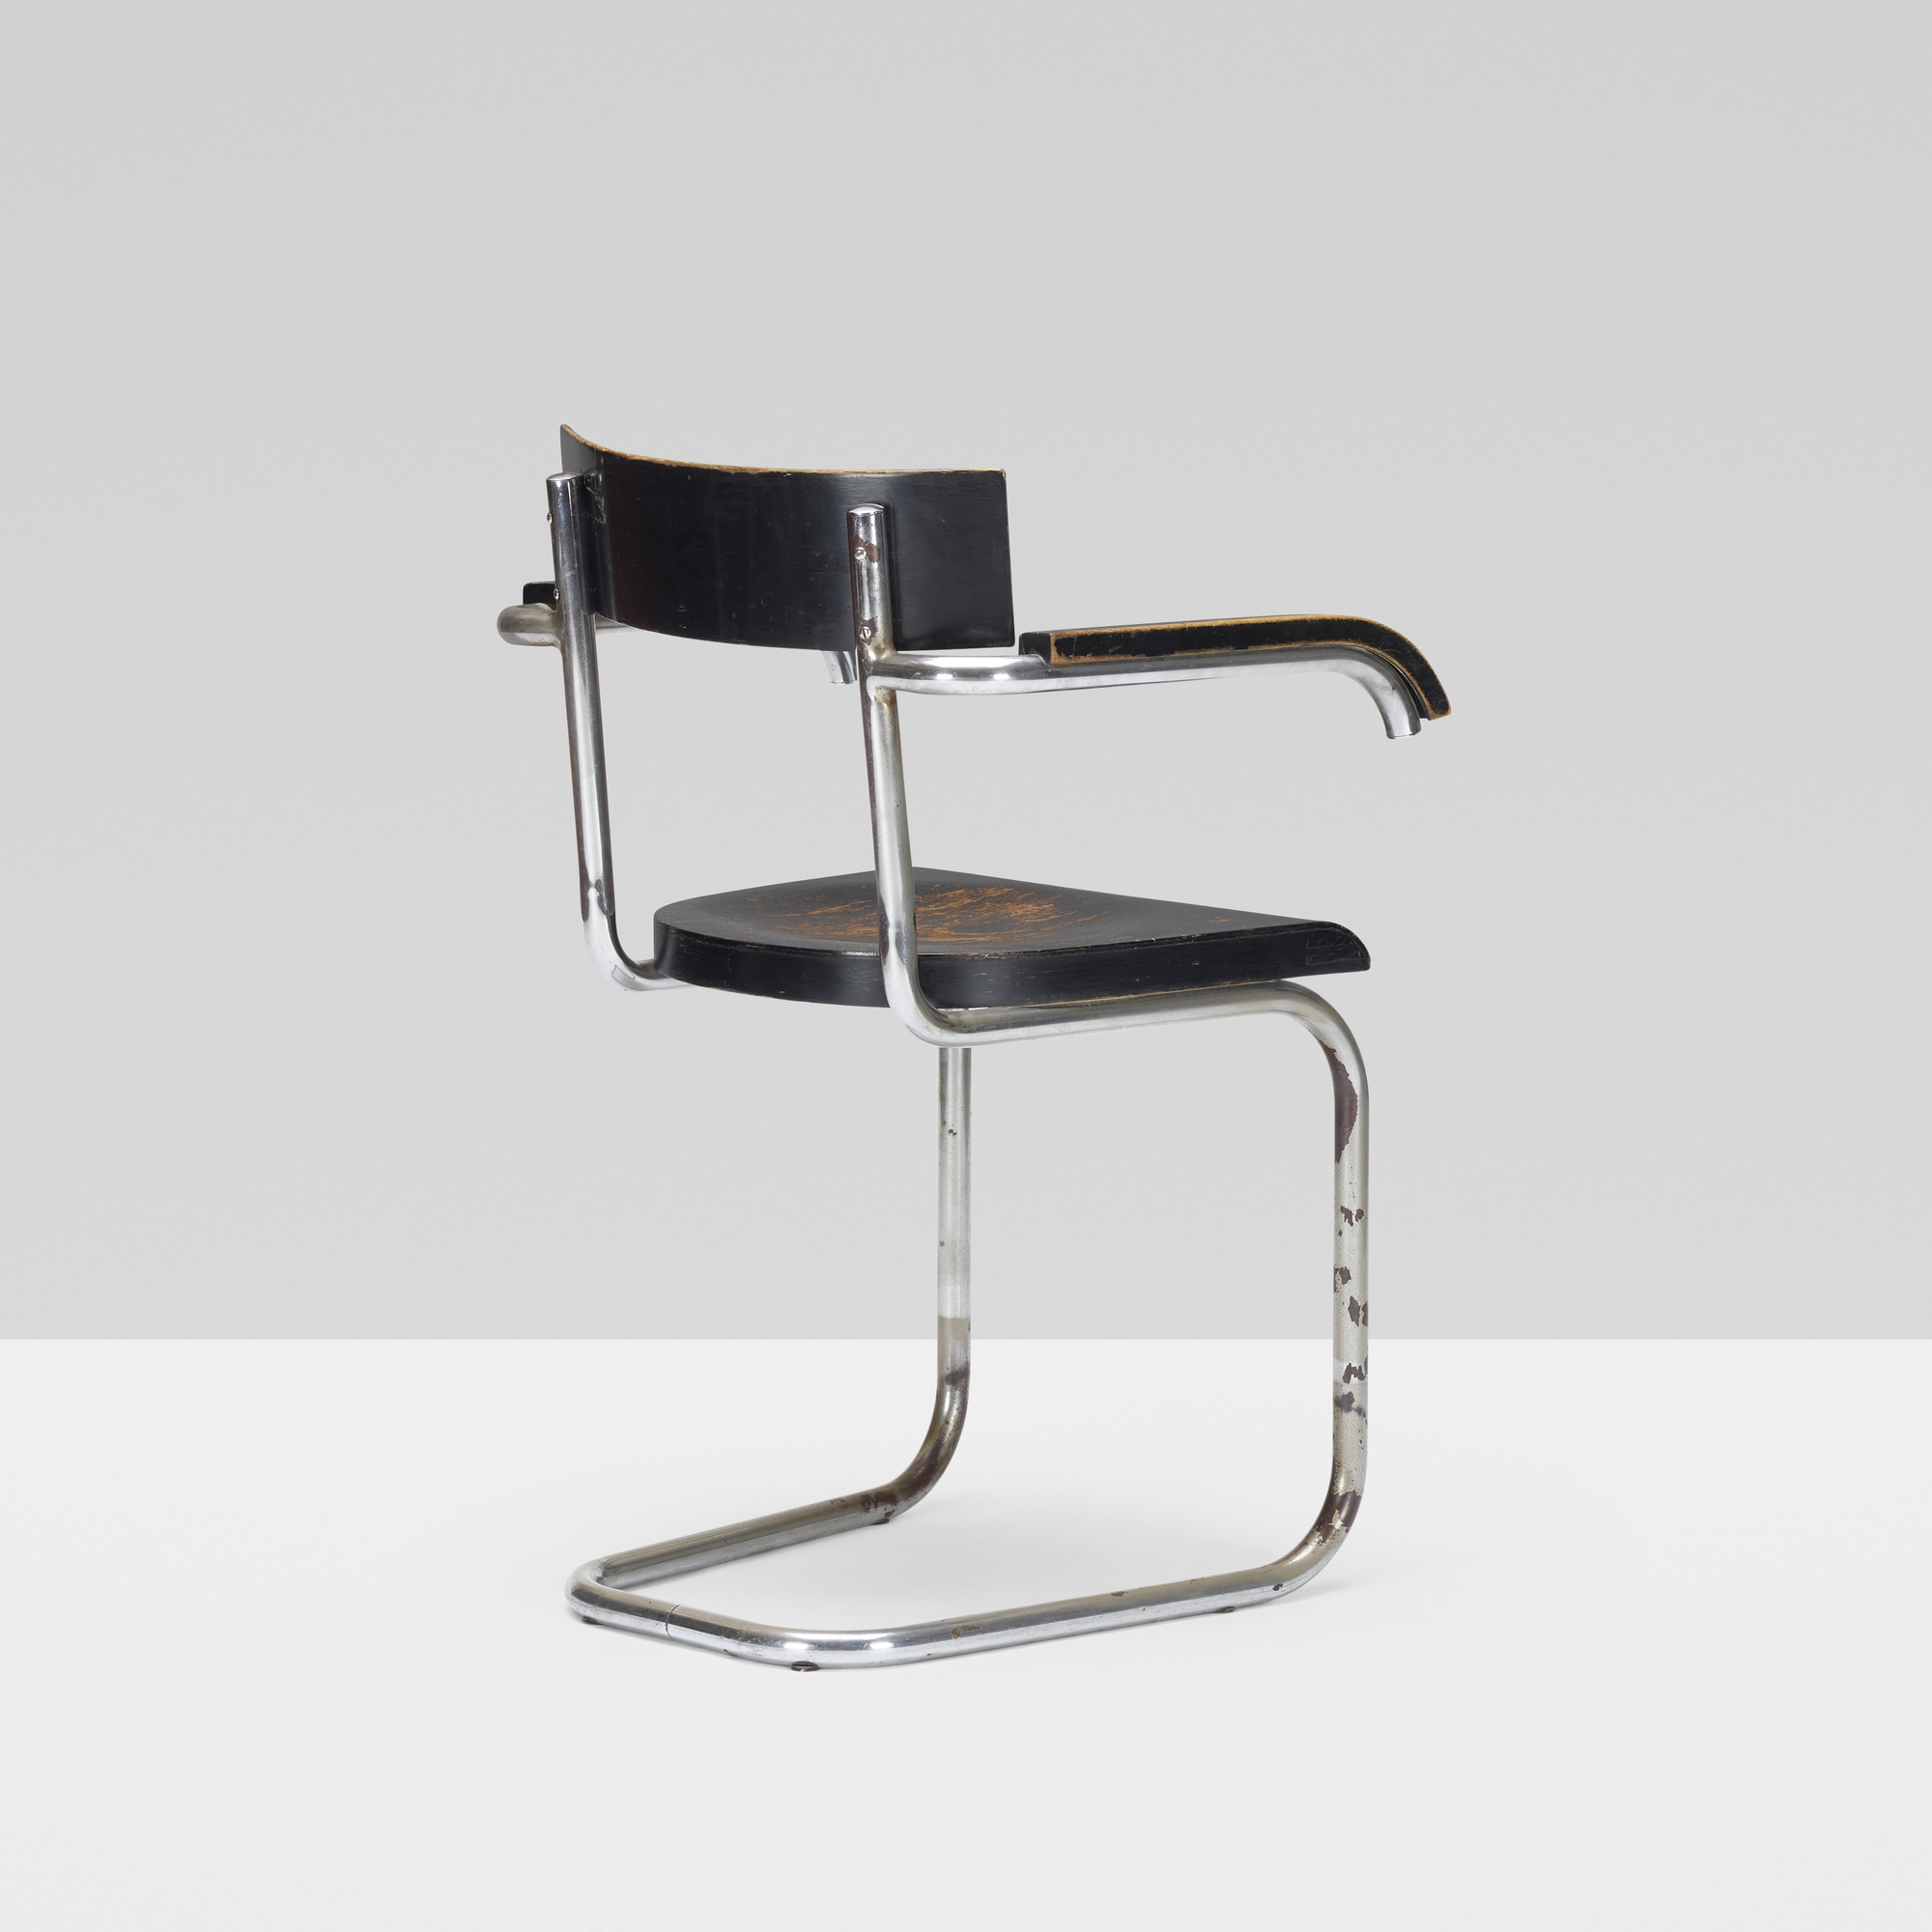 143: Mart Stam / armchair (1 of 2)